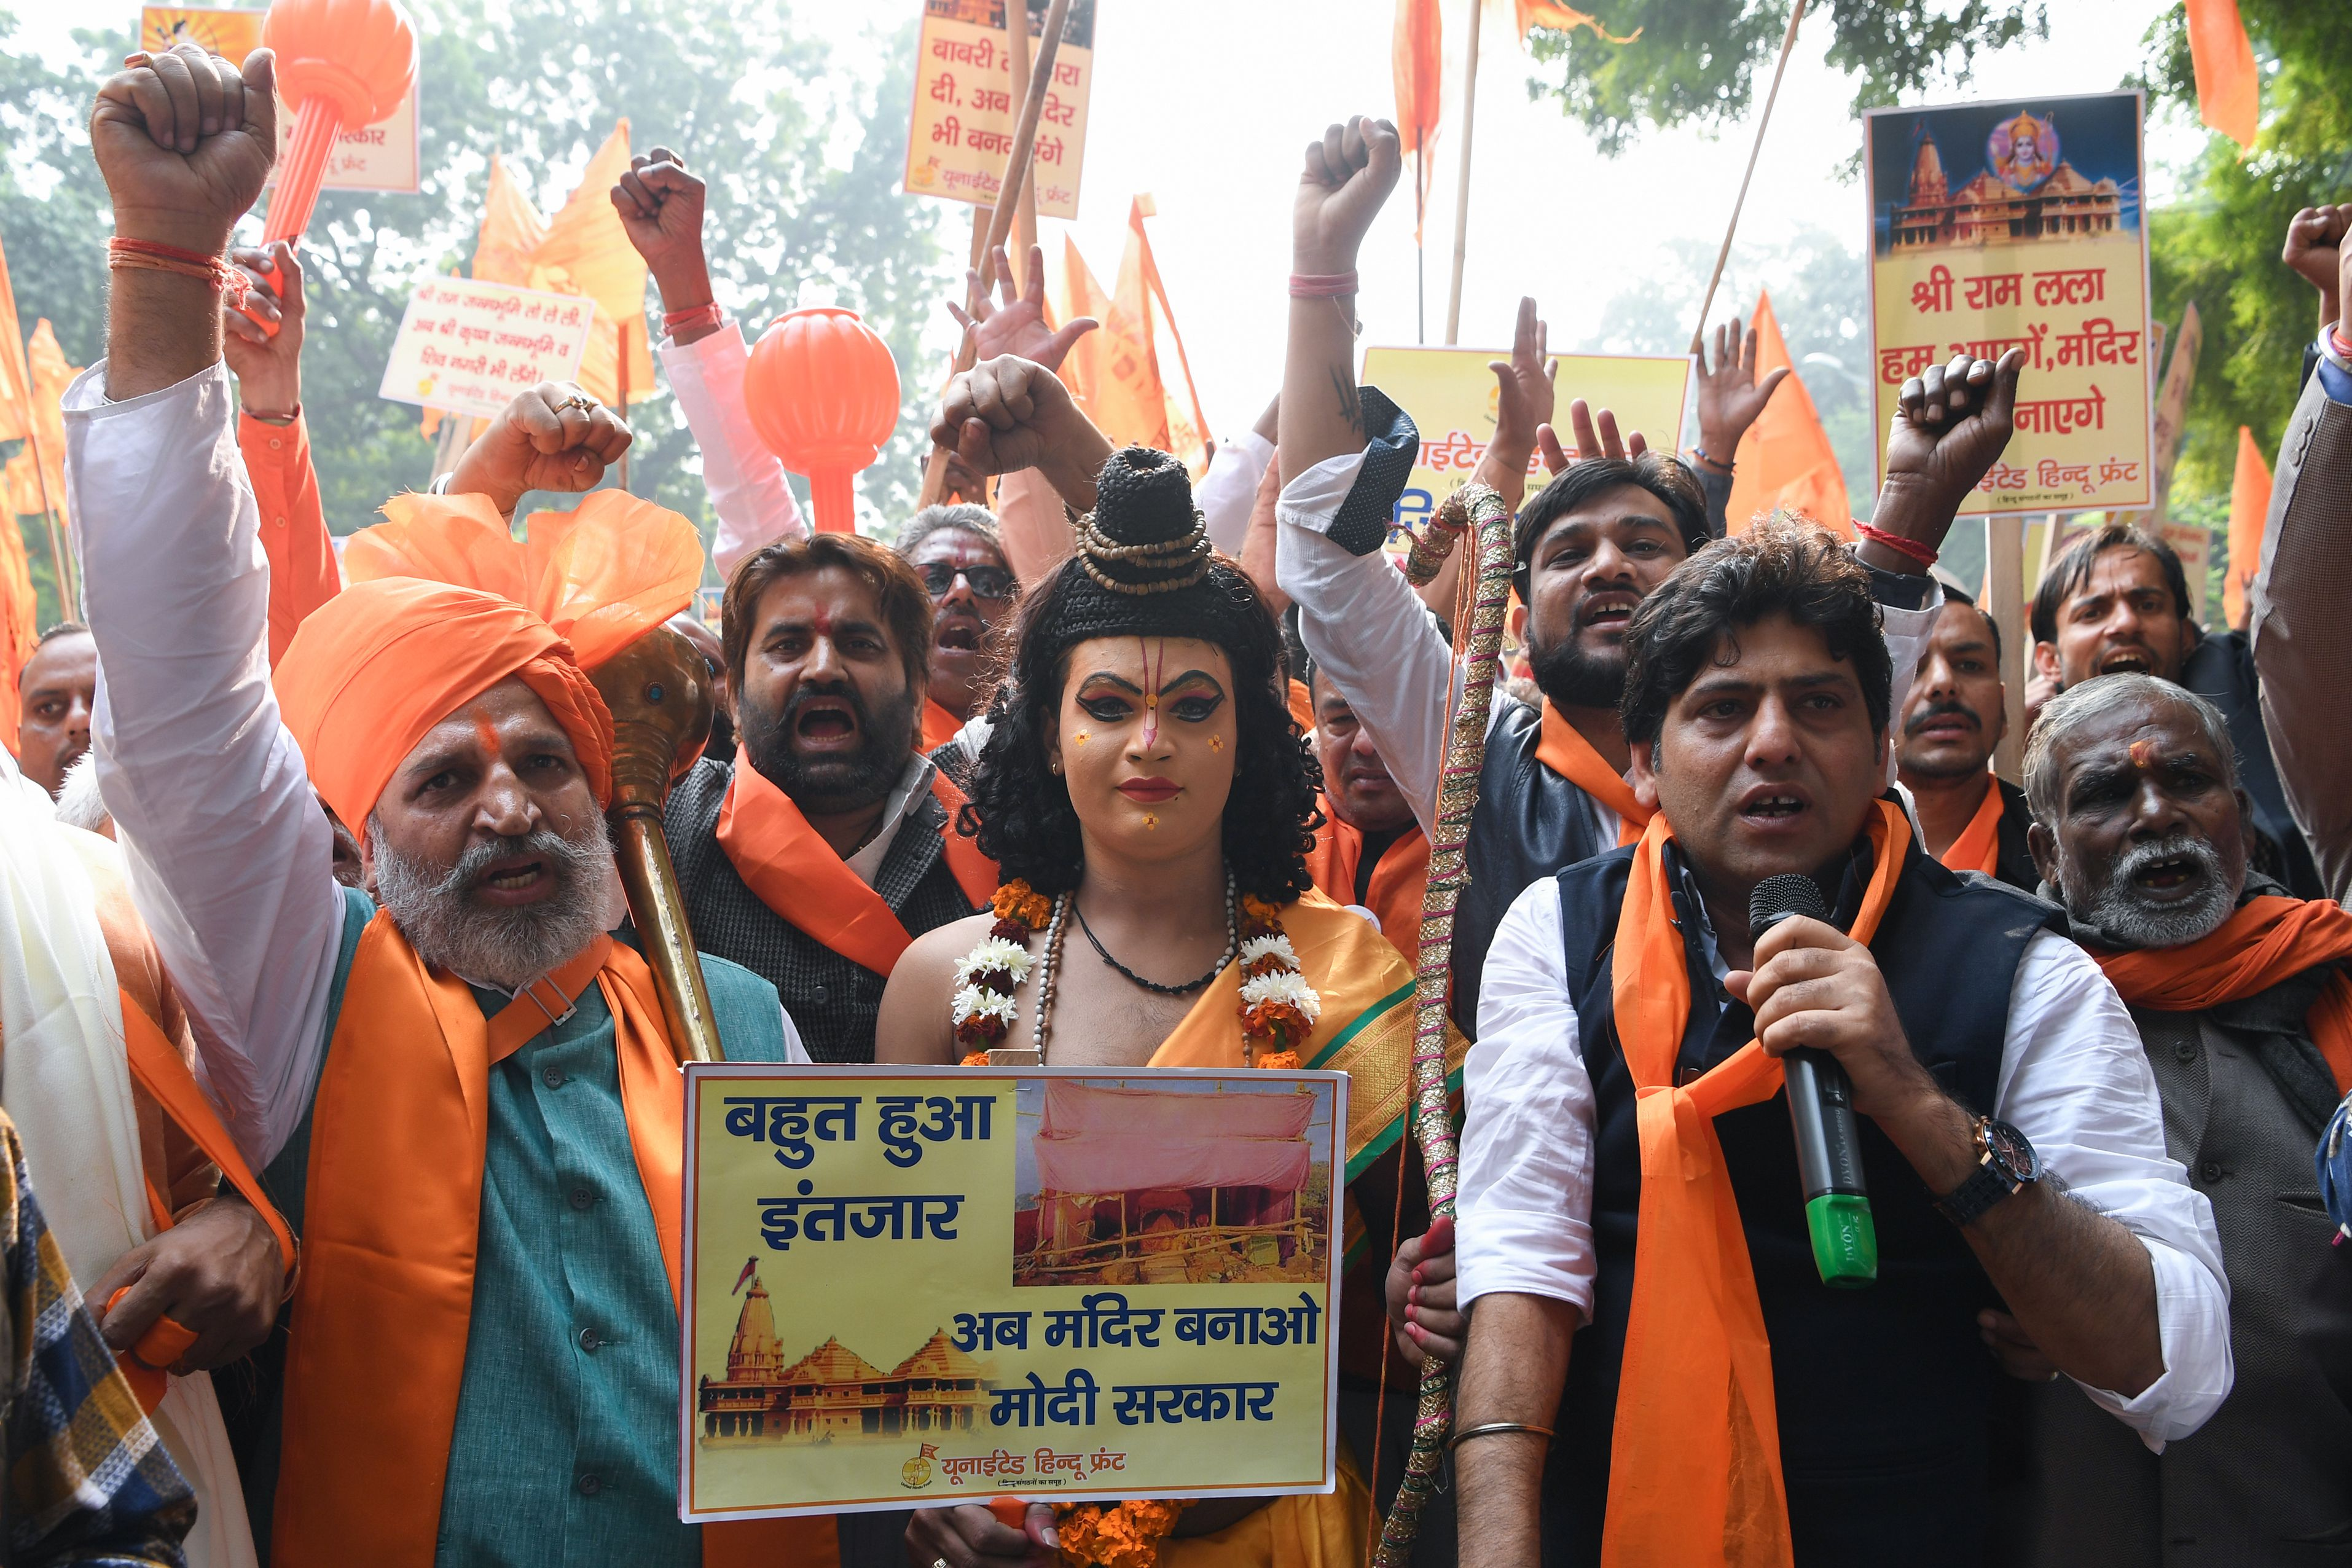 Activists of the right-wing United Hindu Front shout slogans during a demonstration calling for the construction of a temple on the site of the demolished 16th century Babri mosque located in Ayodhya which sparked rioting that killed thousands, during the 26th anniversary of the incident in New Delhi on December 6, 2018. (SAJJAD HUSSAIN/AFP/Getty Images)